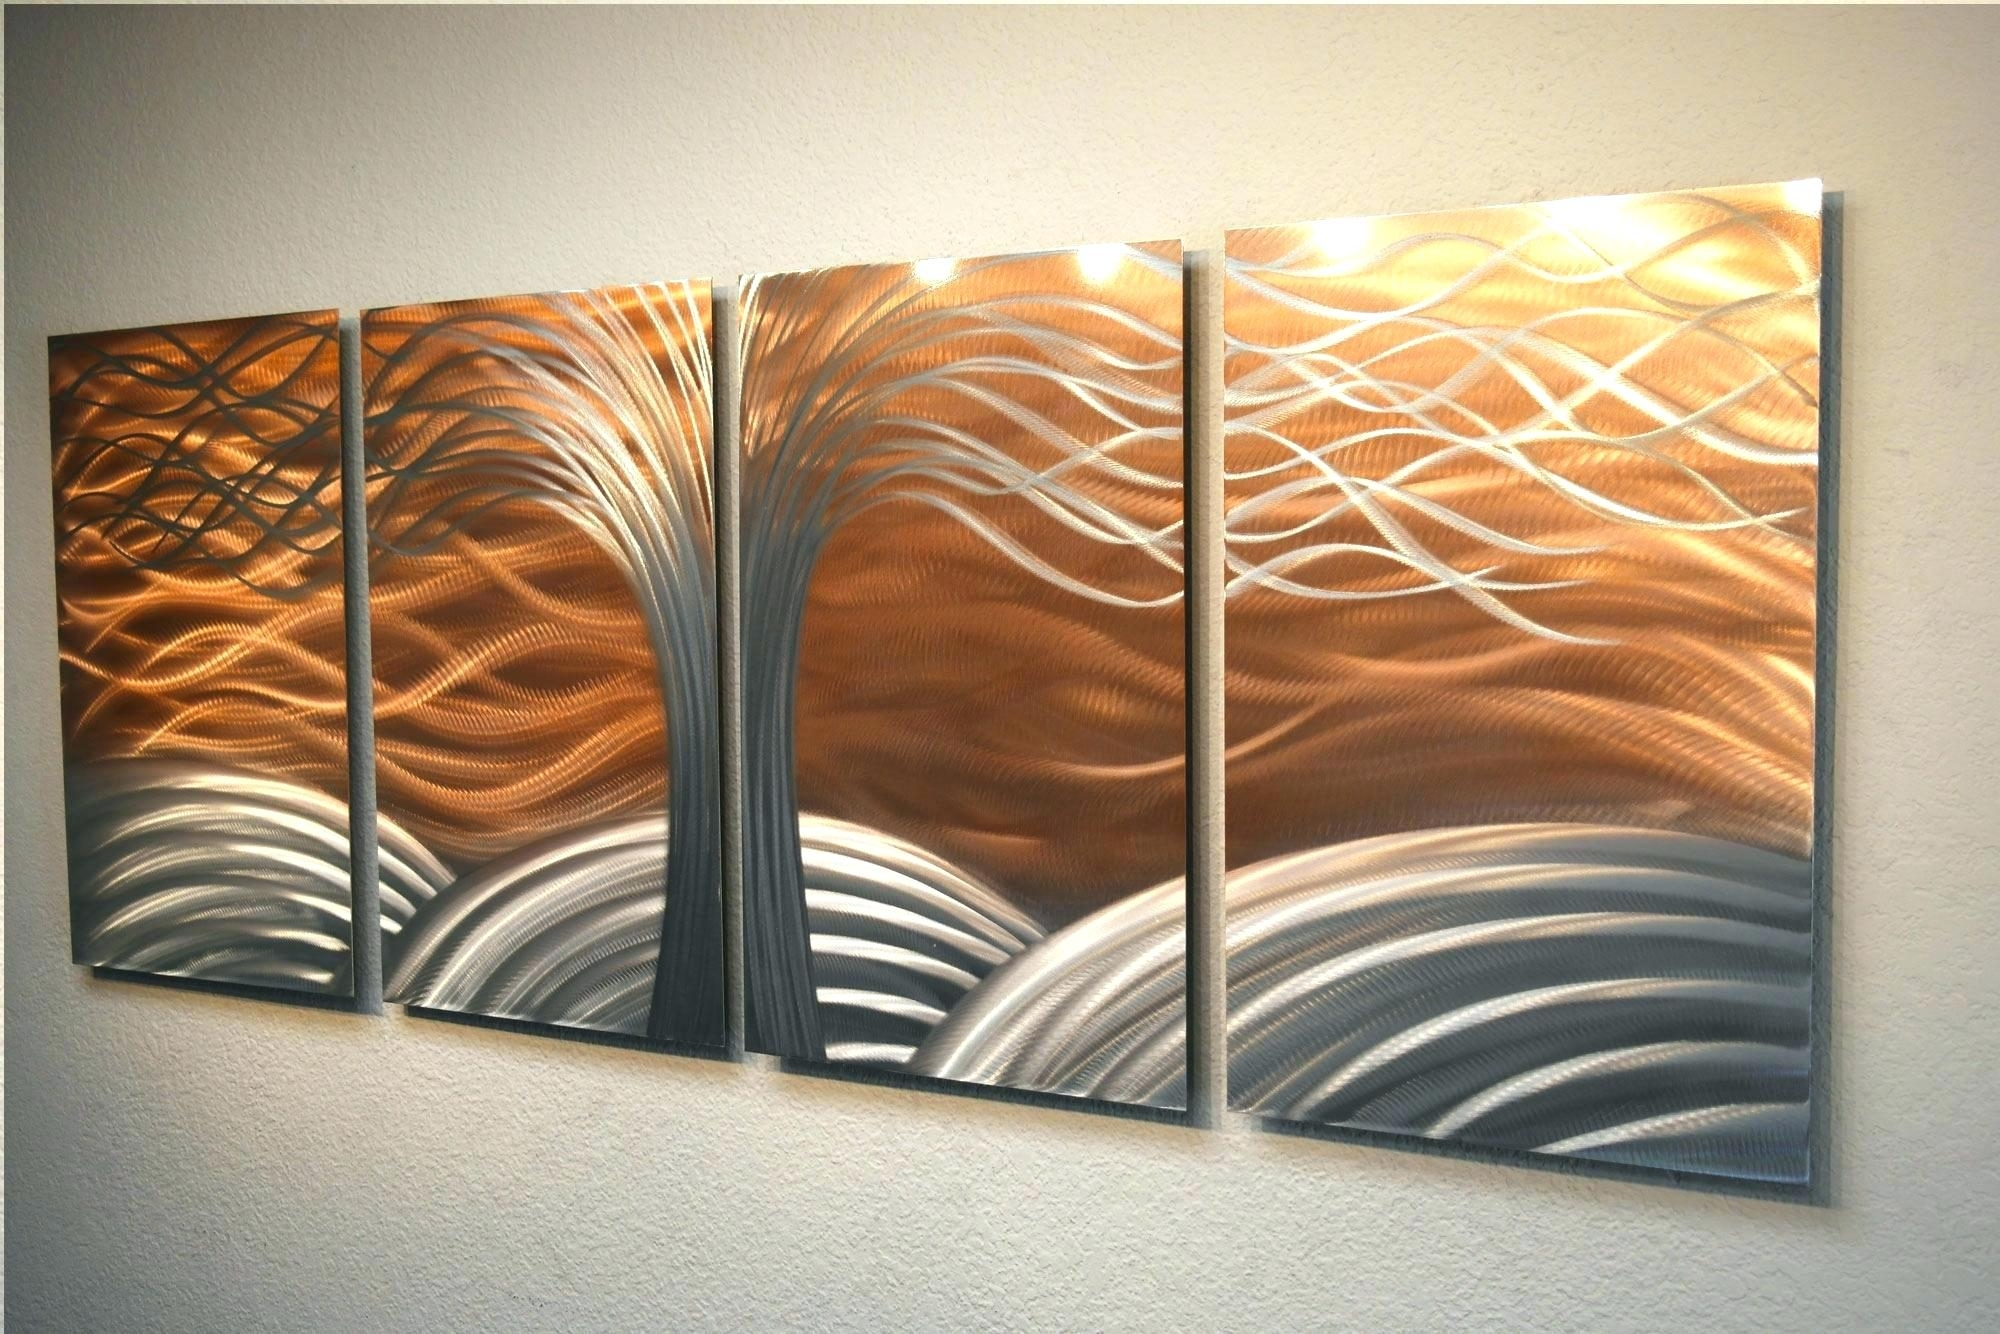 Wall Arts ~ Modern Metal Wall Art Australia Modern Metal Wall Art Intended For Newest Abstract Metal Wall Art Australia (View 6 of 20)